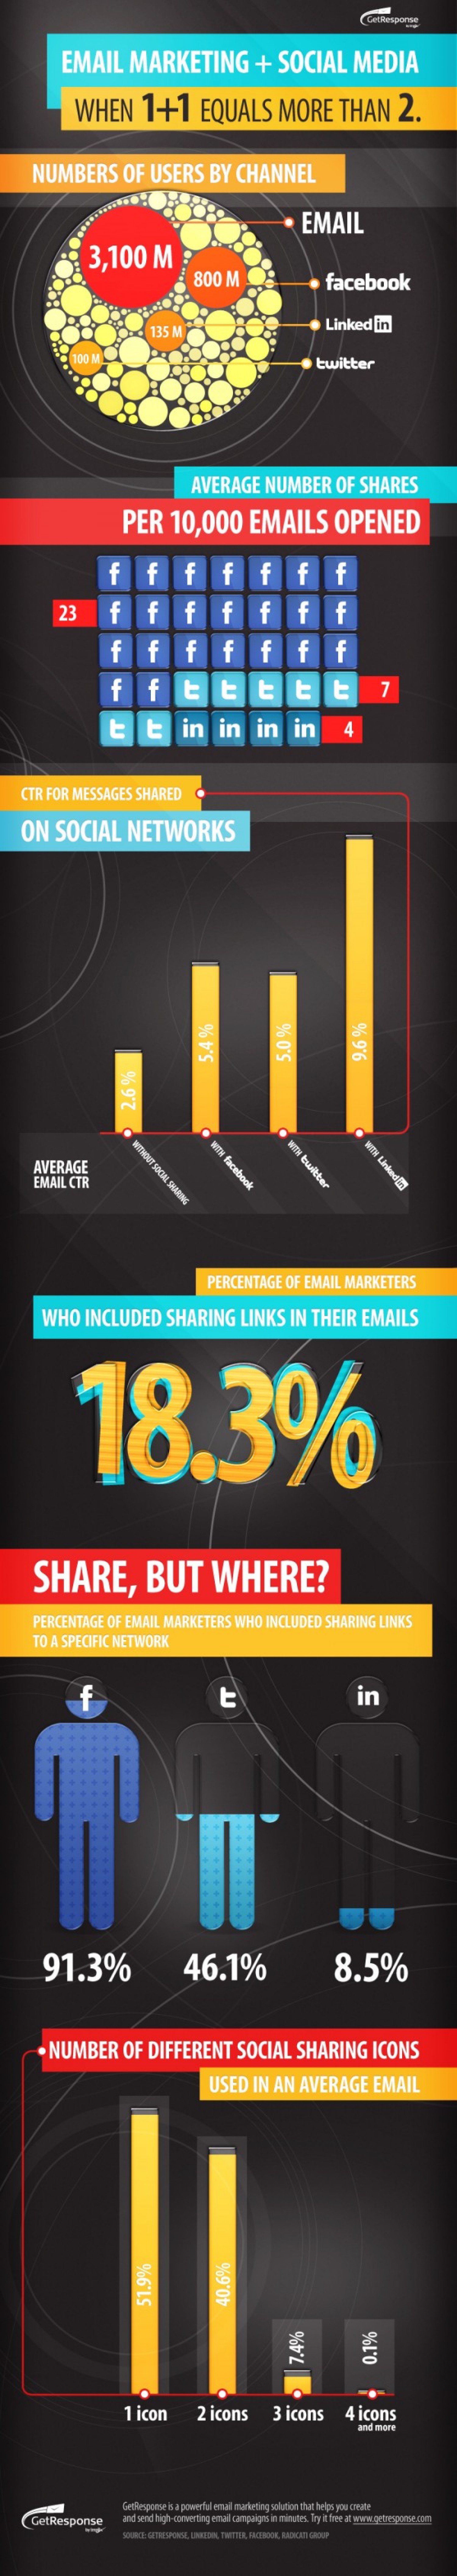 Social sharing boost email marketing results